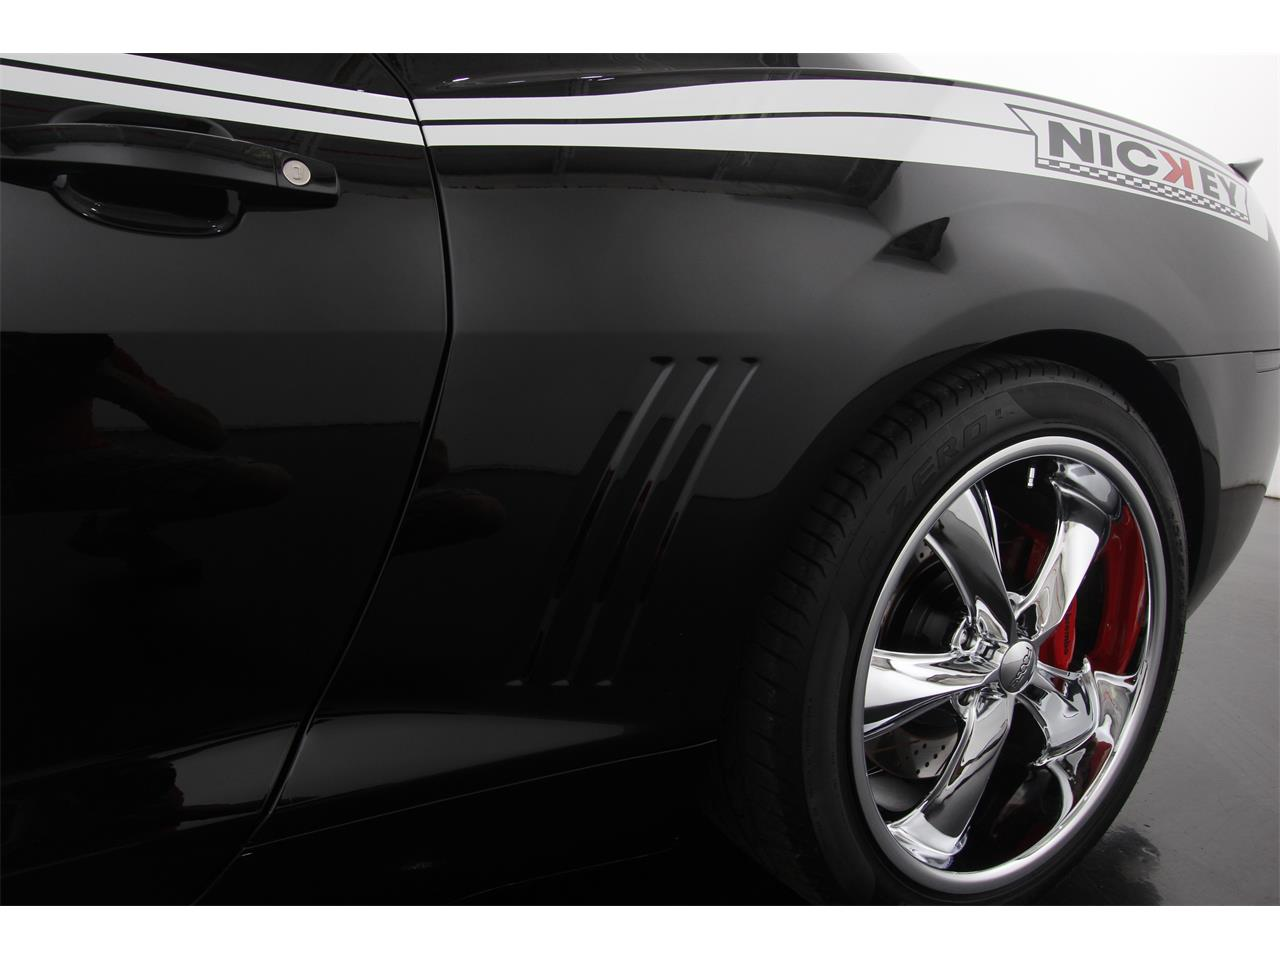 Large Picture of '12 Chevrolet Camaro located in Saint Charles Illinois - $52,500.00 - JHYN